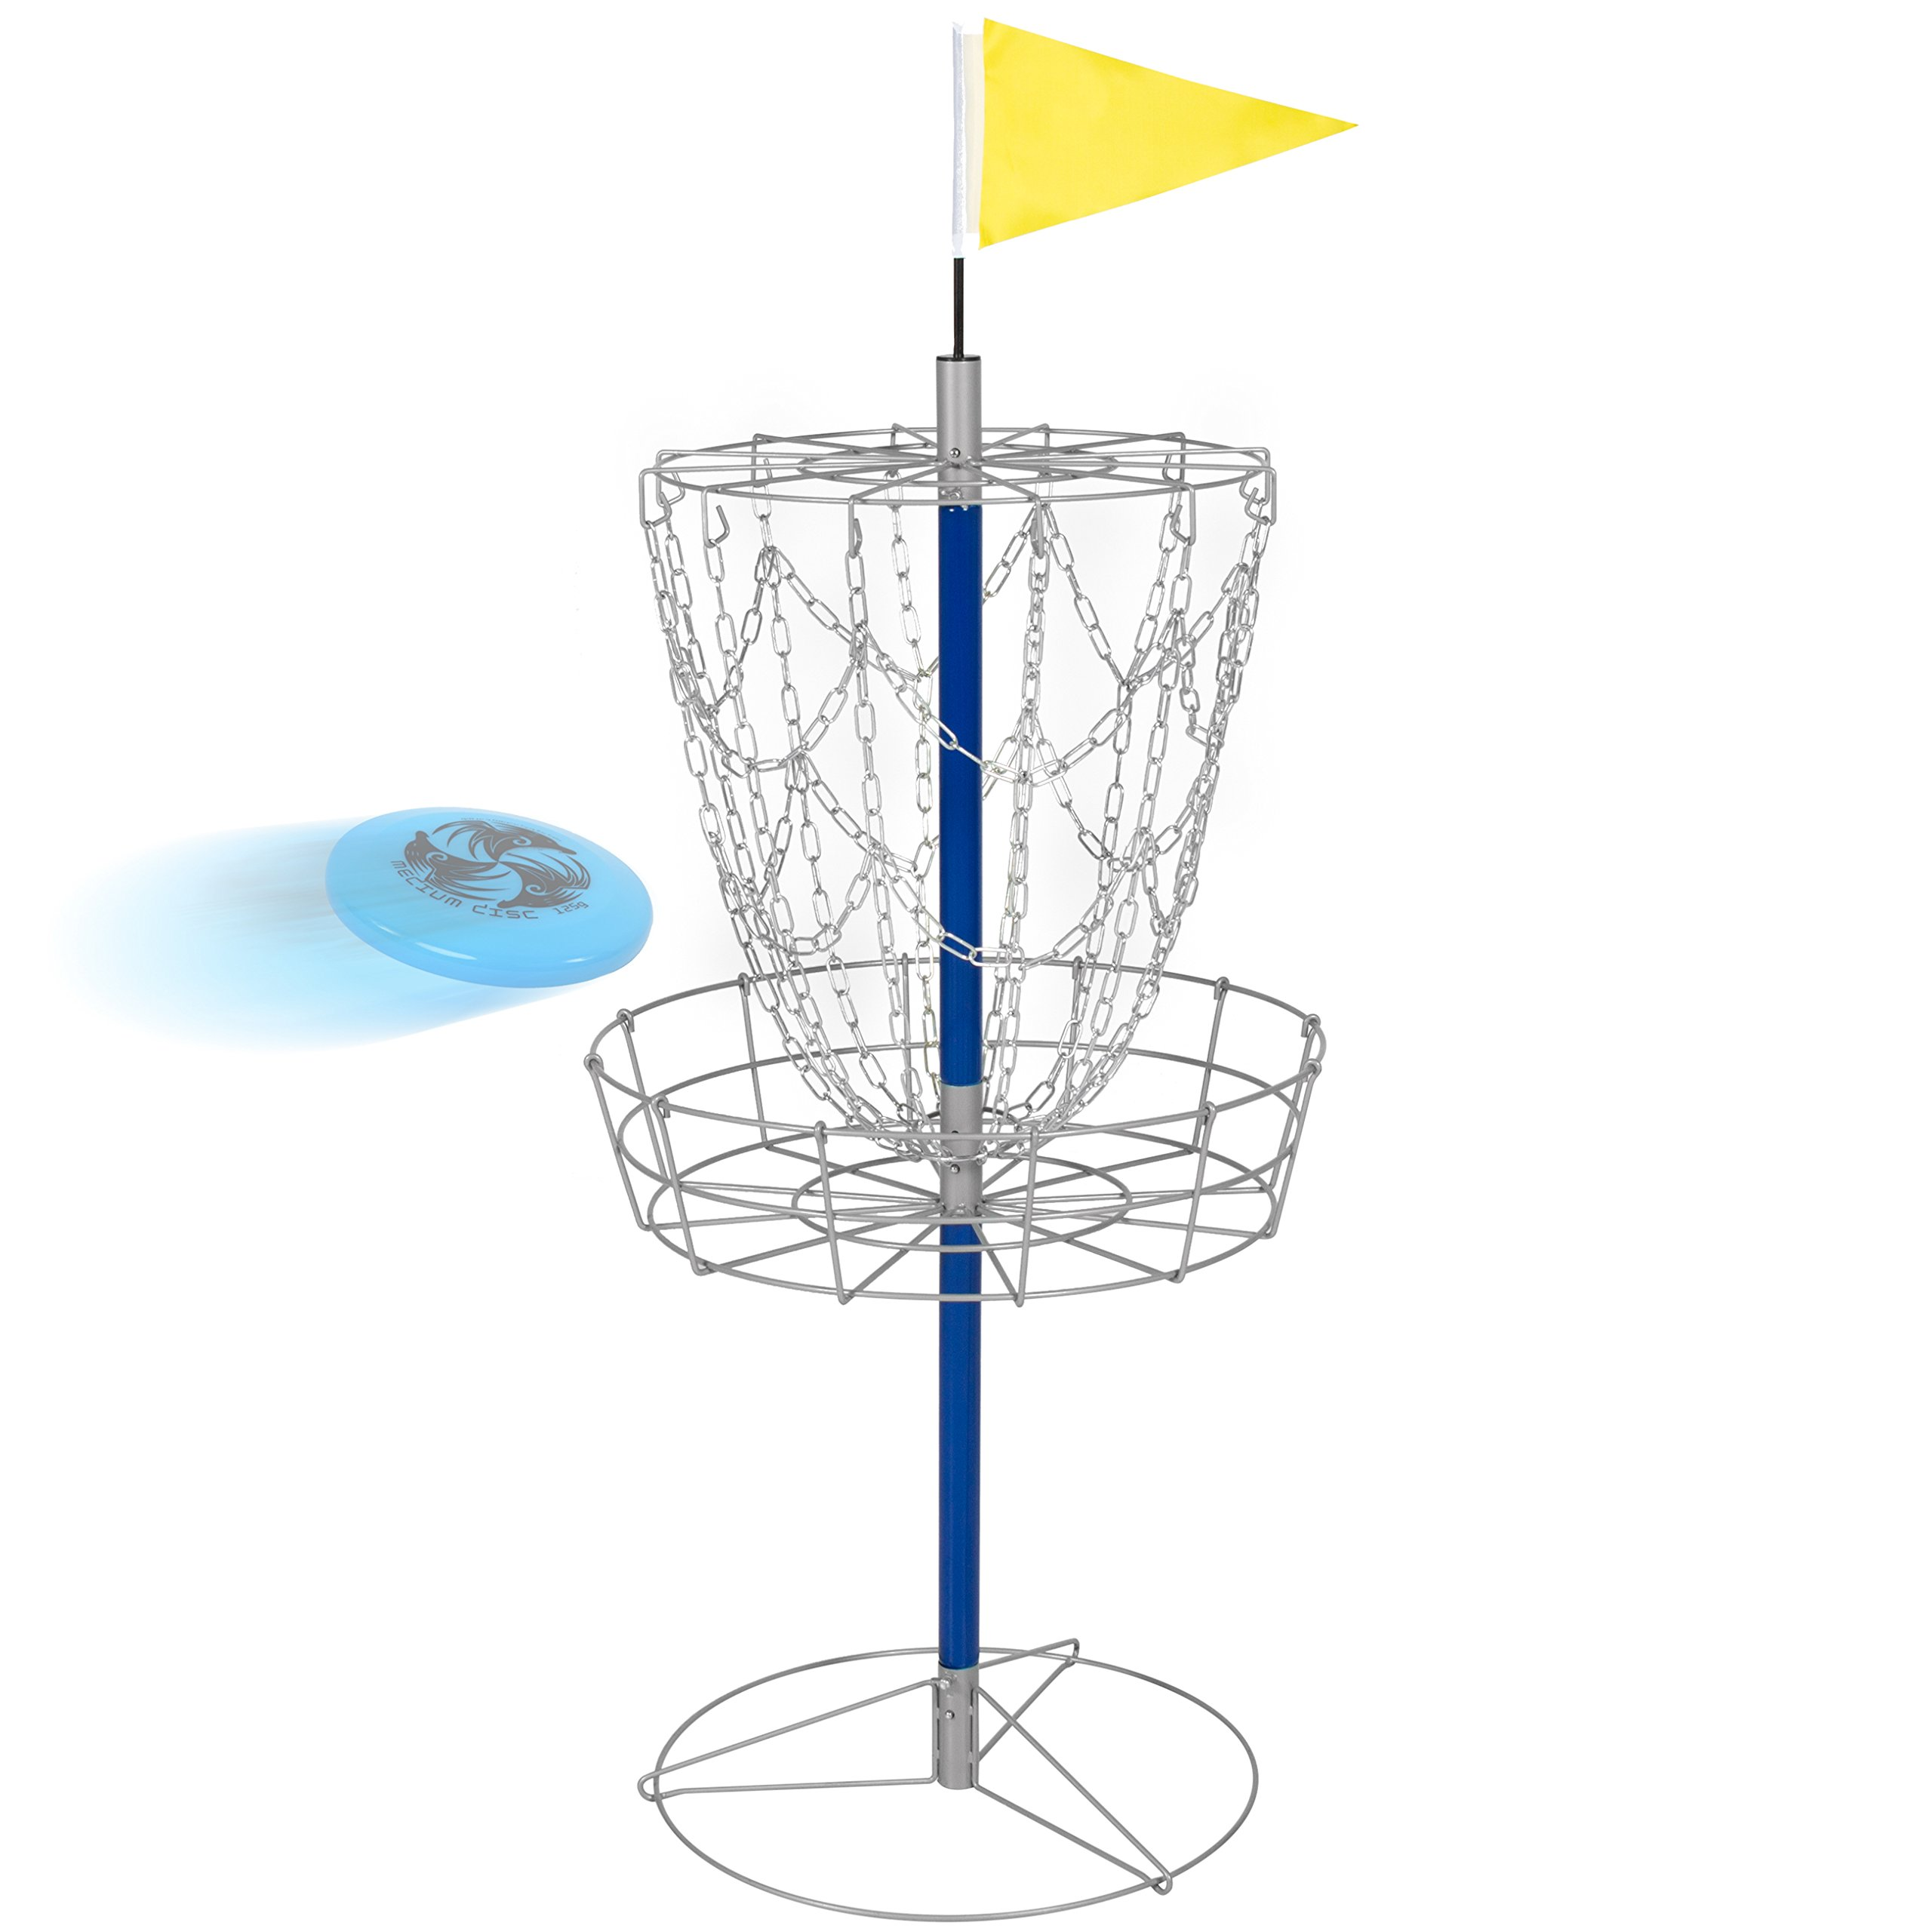 Best Choice Products Portable Disc Golf Basket Double Chains Steel Frisbee Hole by Best Choice Products